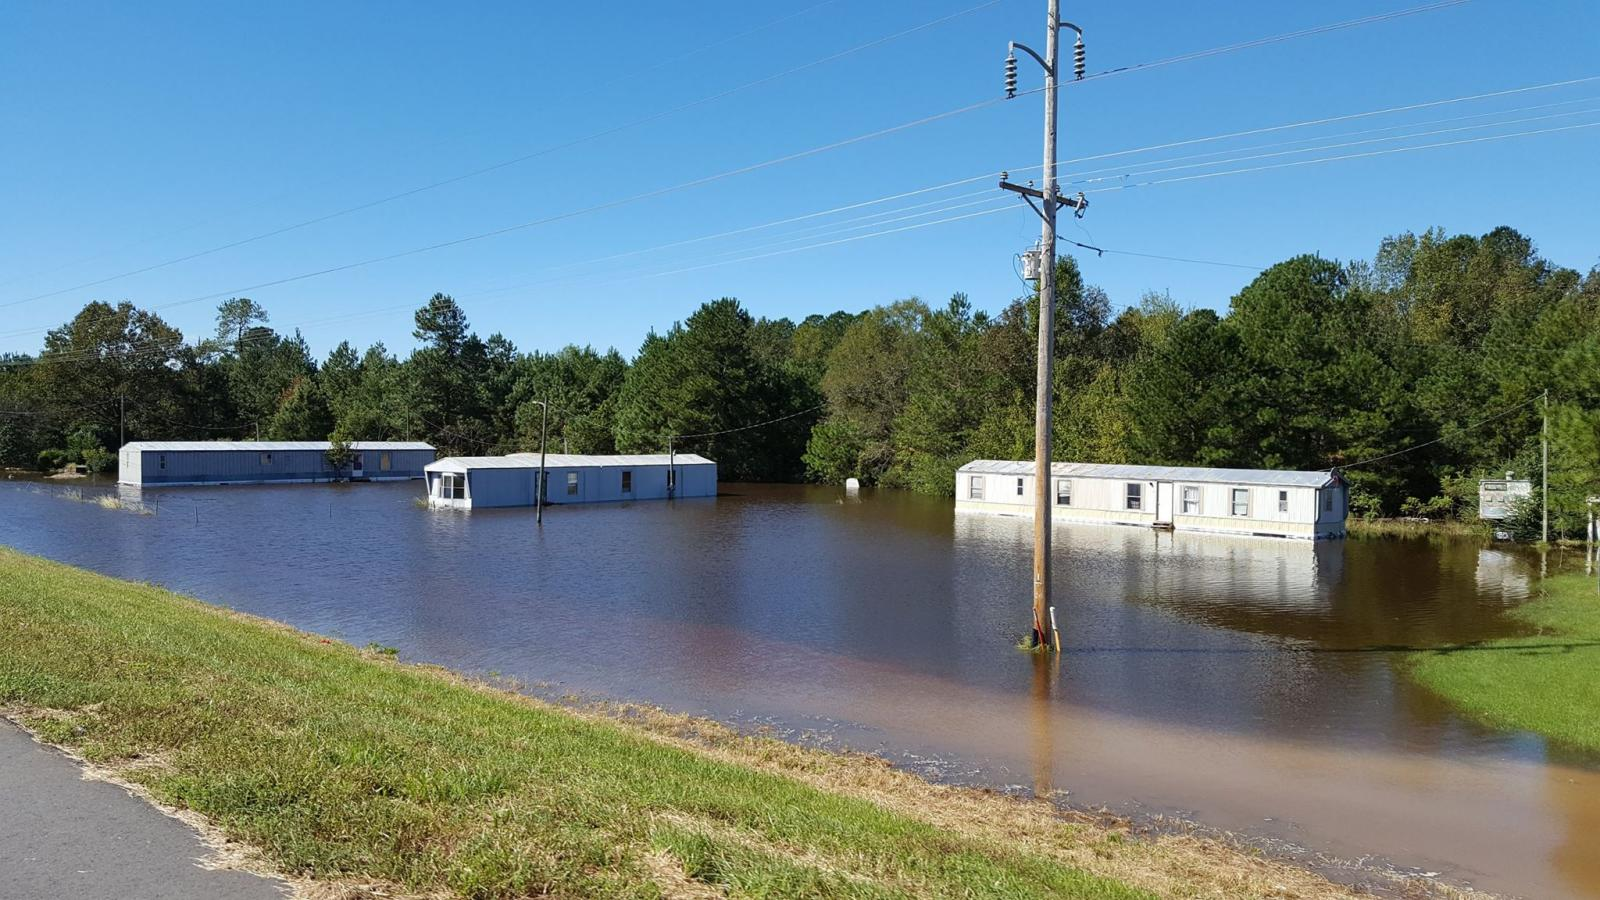 Flooding in western Bladen County, NC along Tar Heel Ferry Road, east of the Cape Fear River.